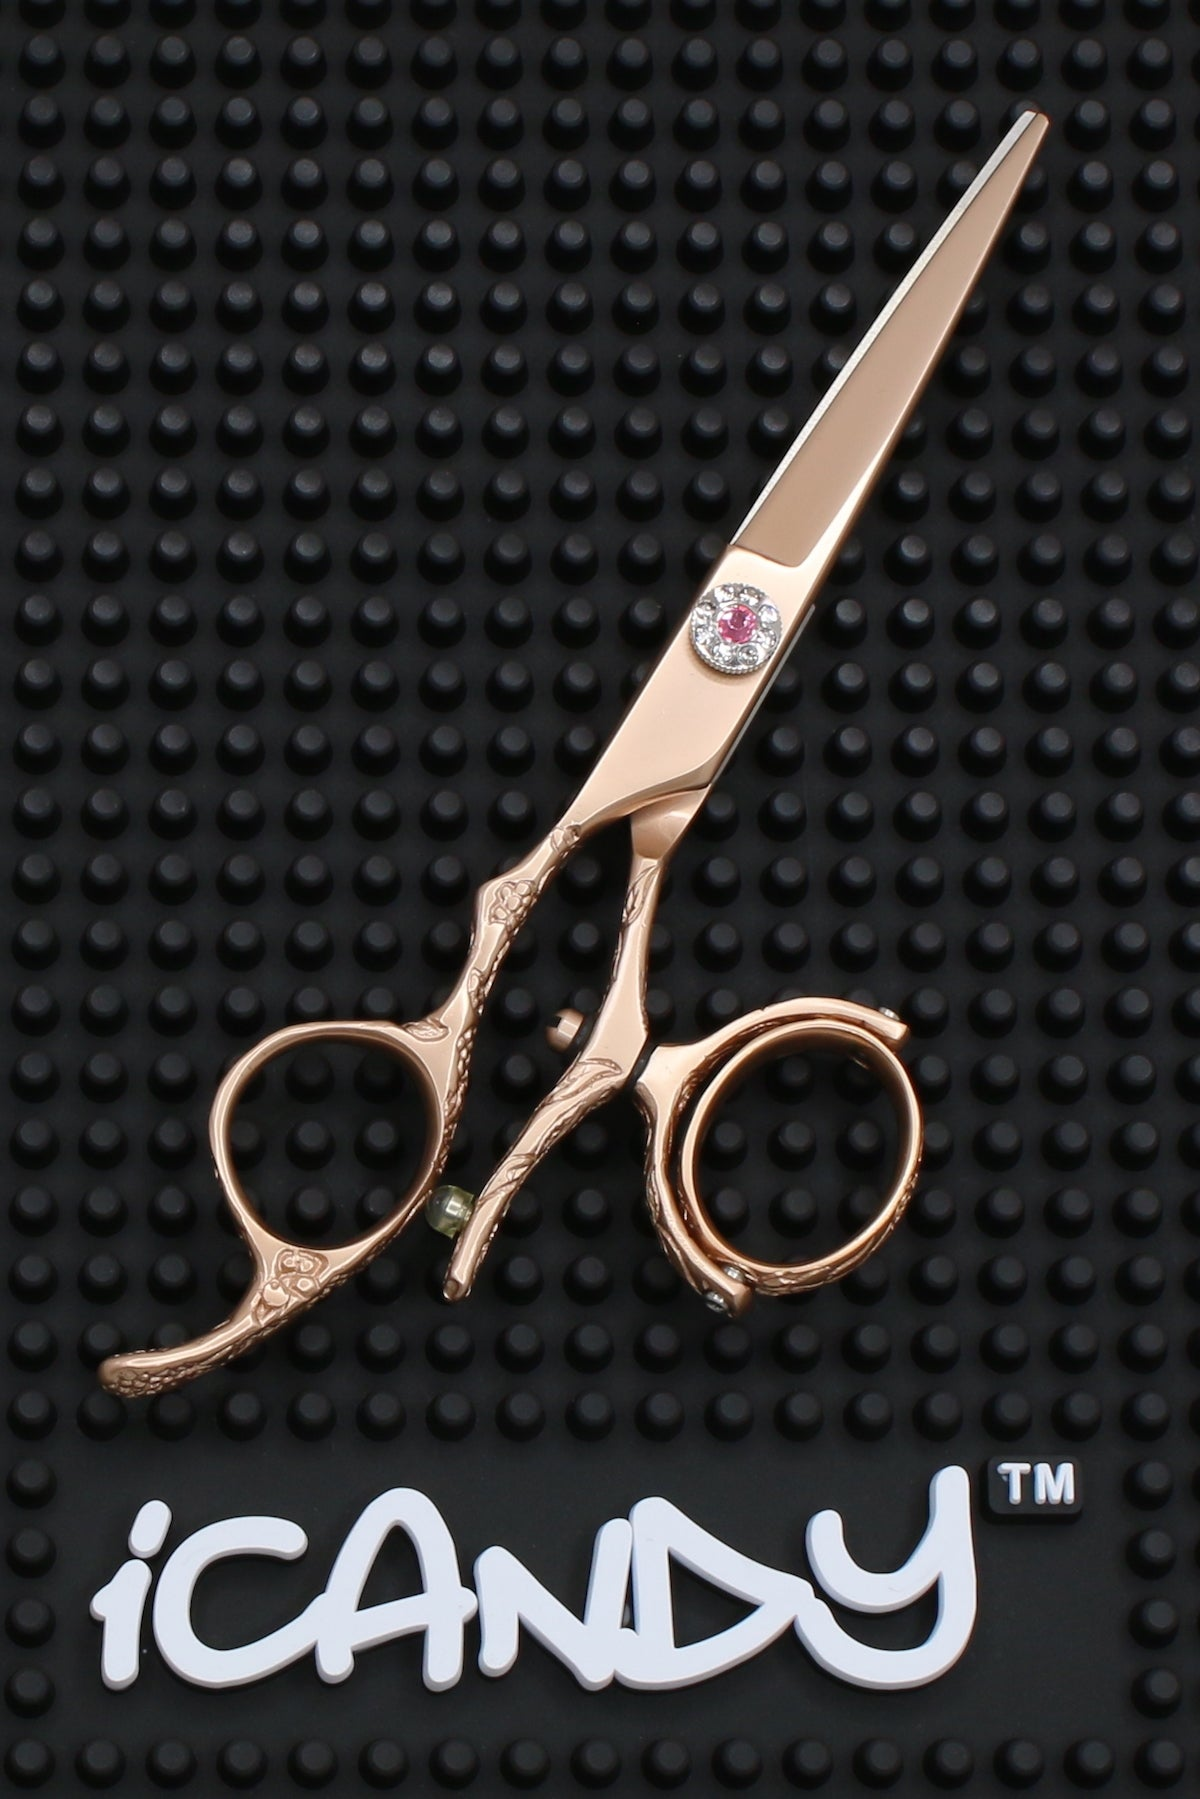 iCandy Dream Rose Gold Lefty Swivel Scissors - Limited Edition ! Scissors (5.5 inch) - iCandy Scissors